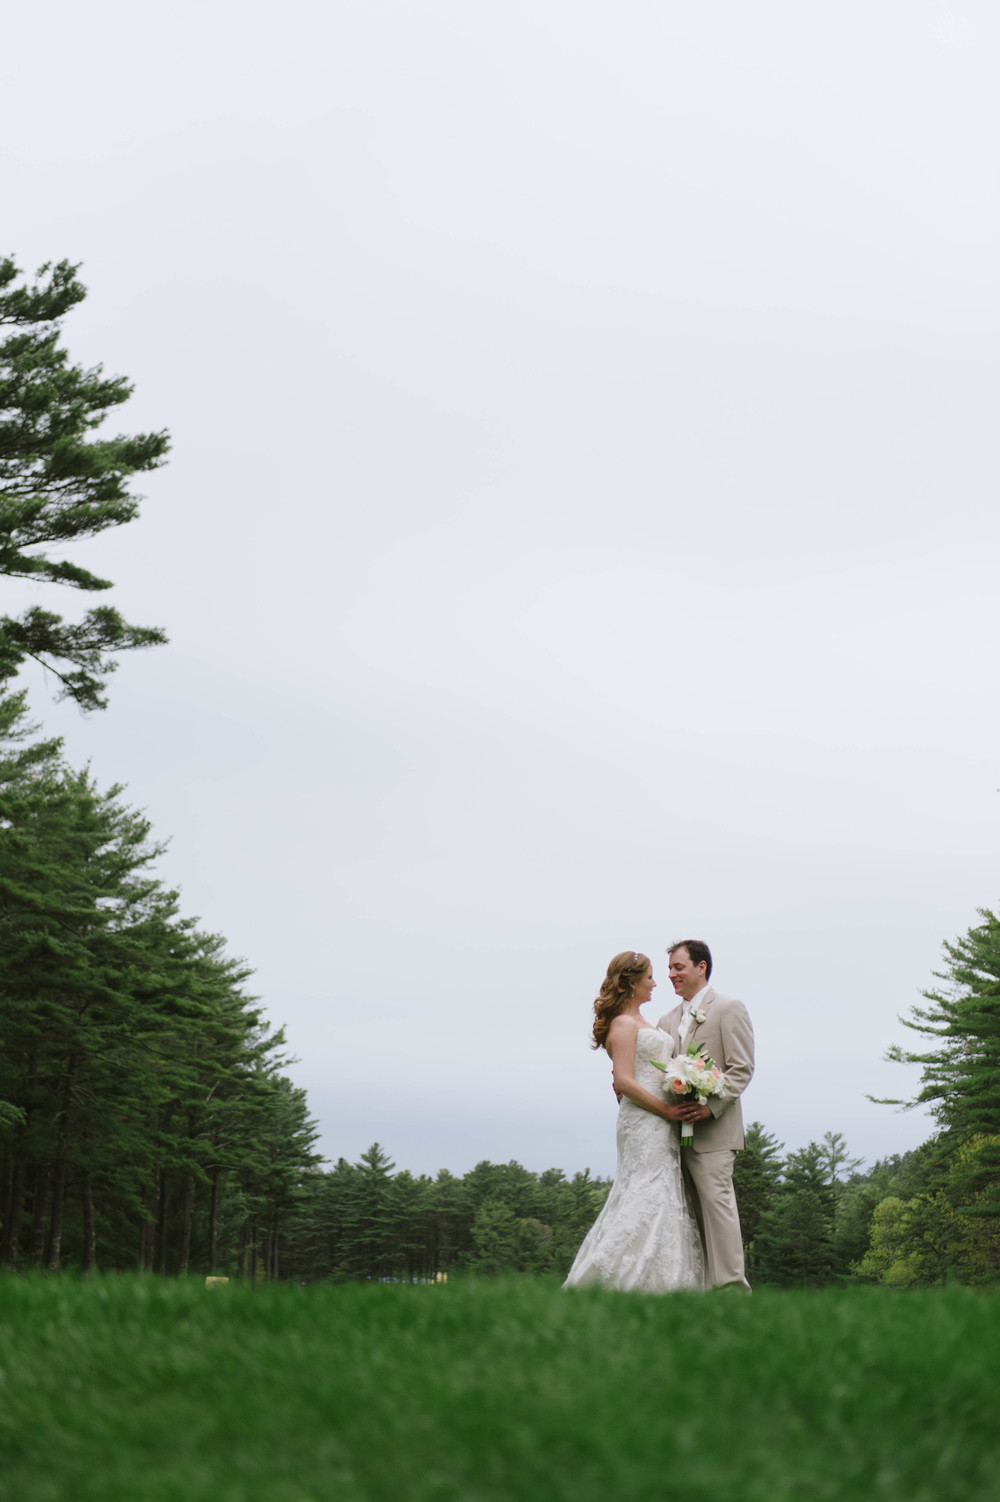 Pinehills_Wedding_Plymouth003.jpg